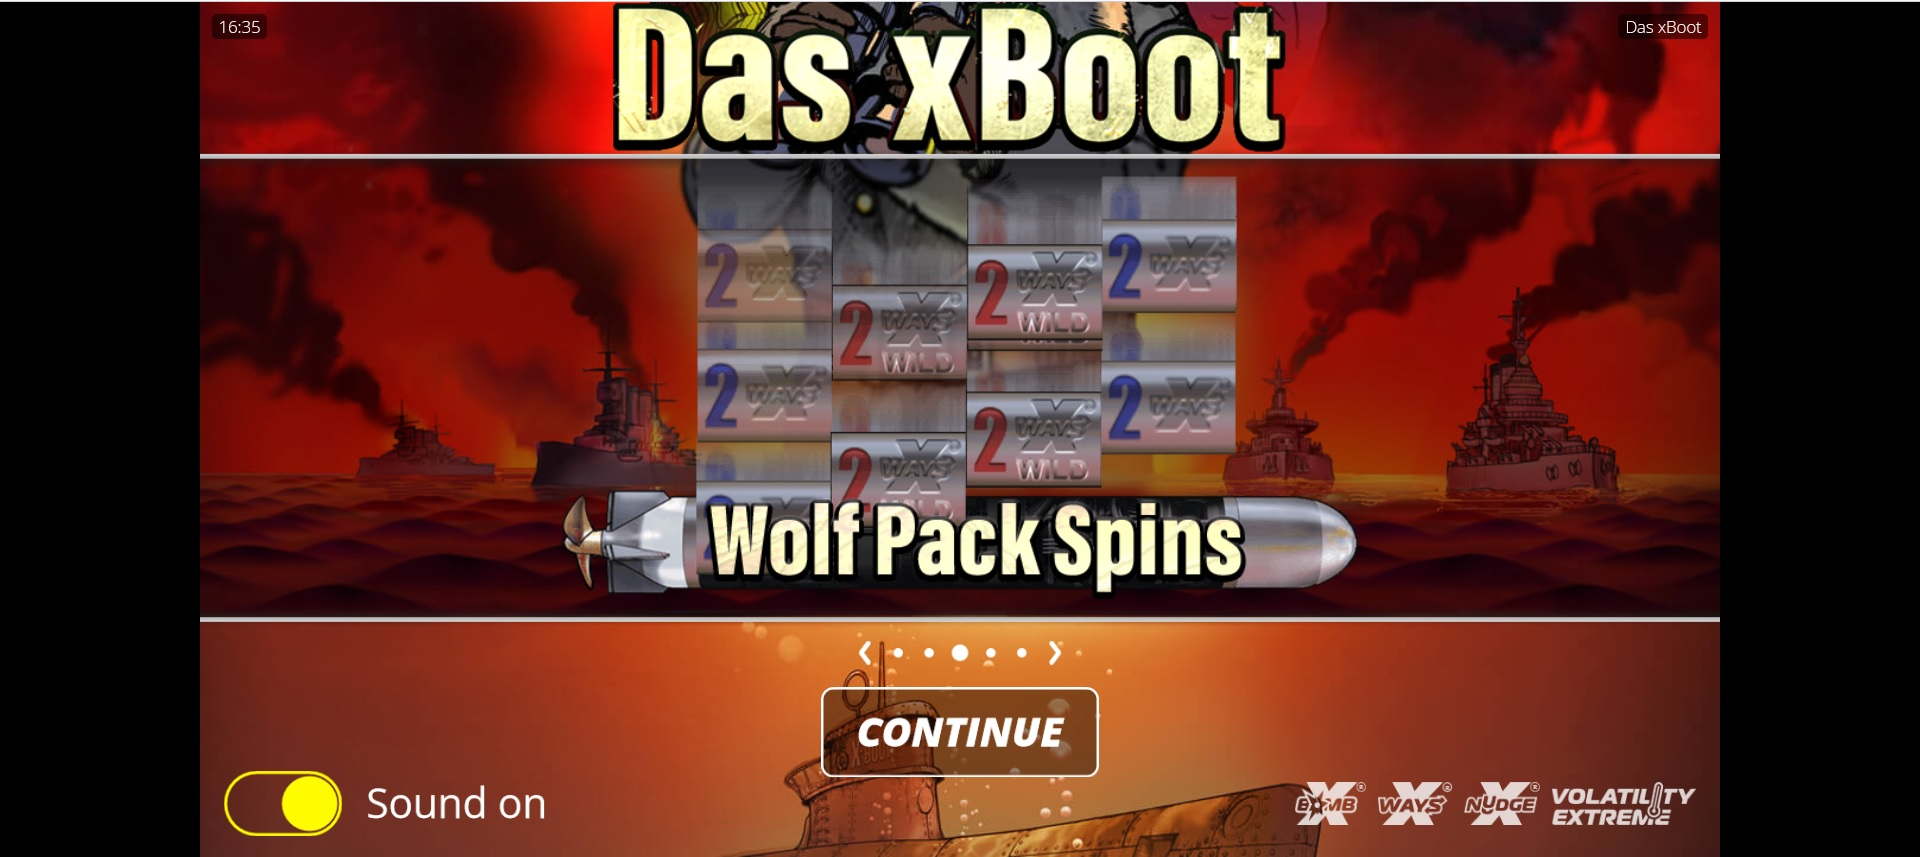 How to win big in Das xBoot – Wolf Pack Spins